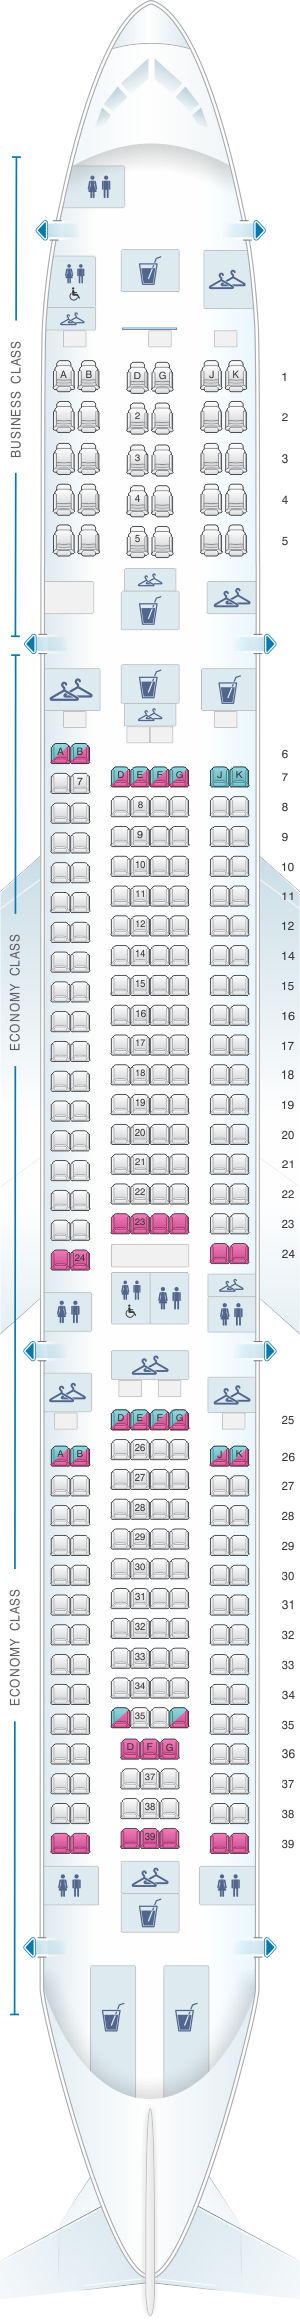 Seat map for China Airlines Airbus A340 300